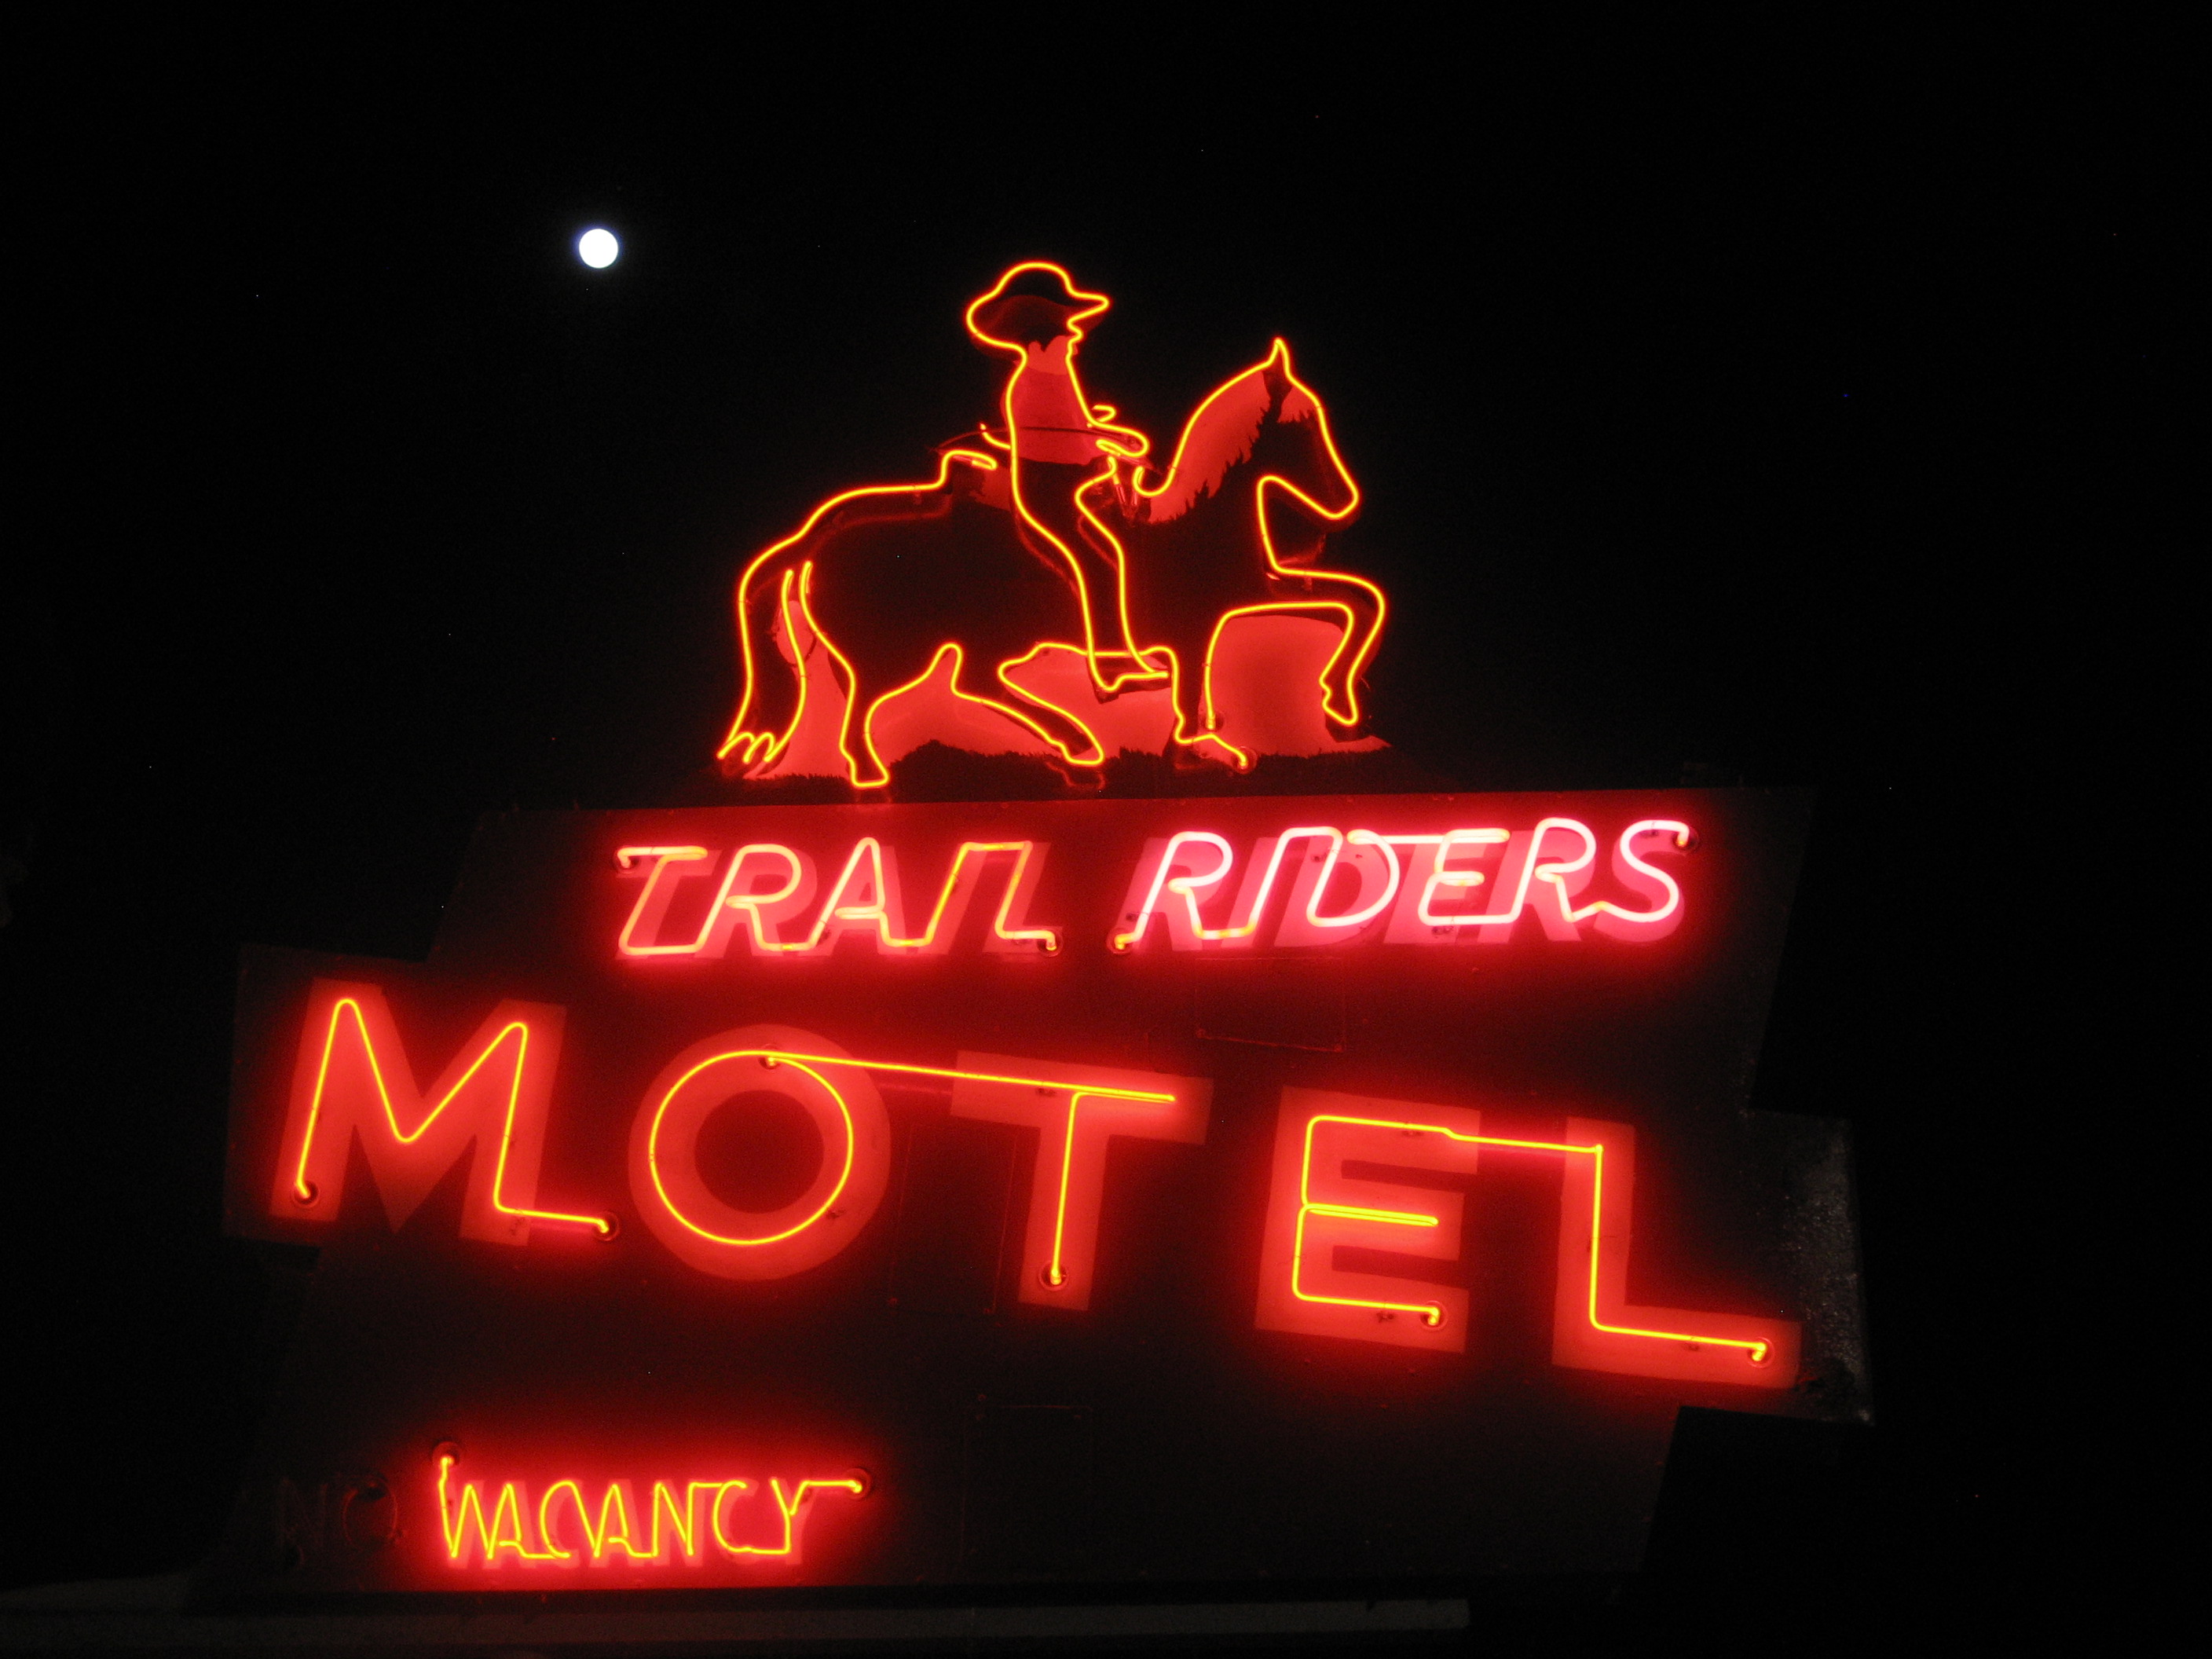 Trail Riders Motel